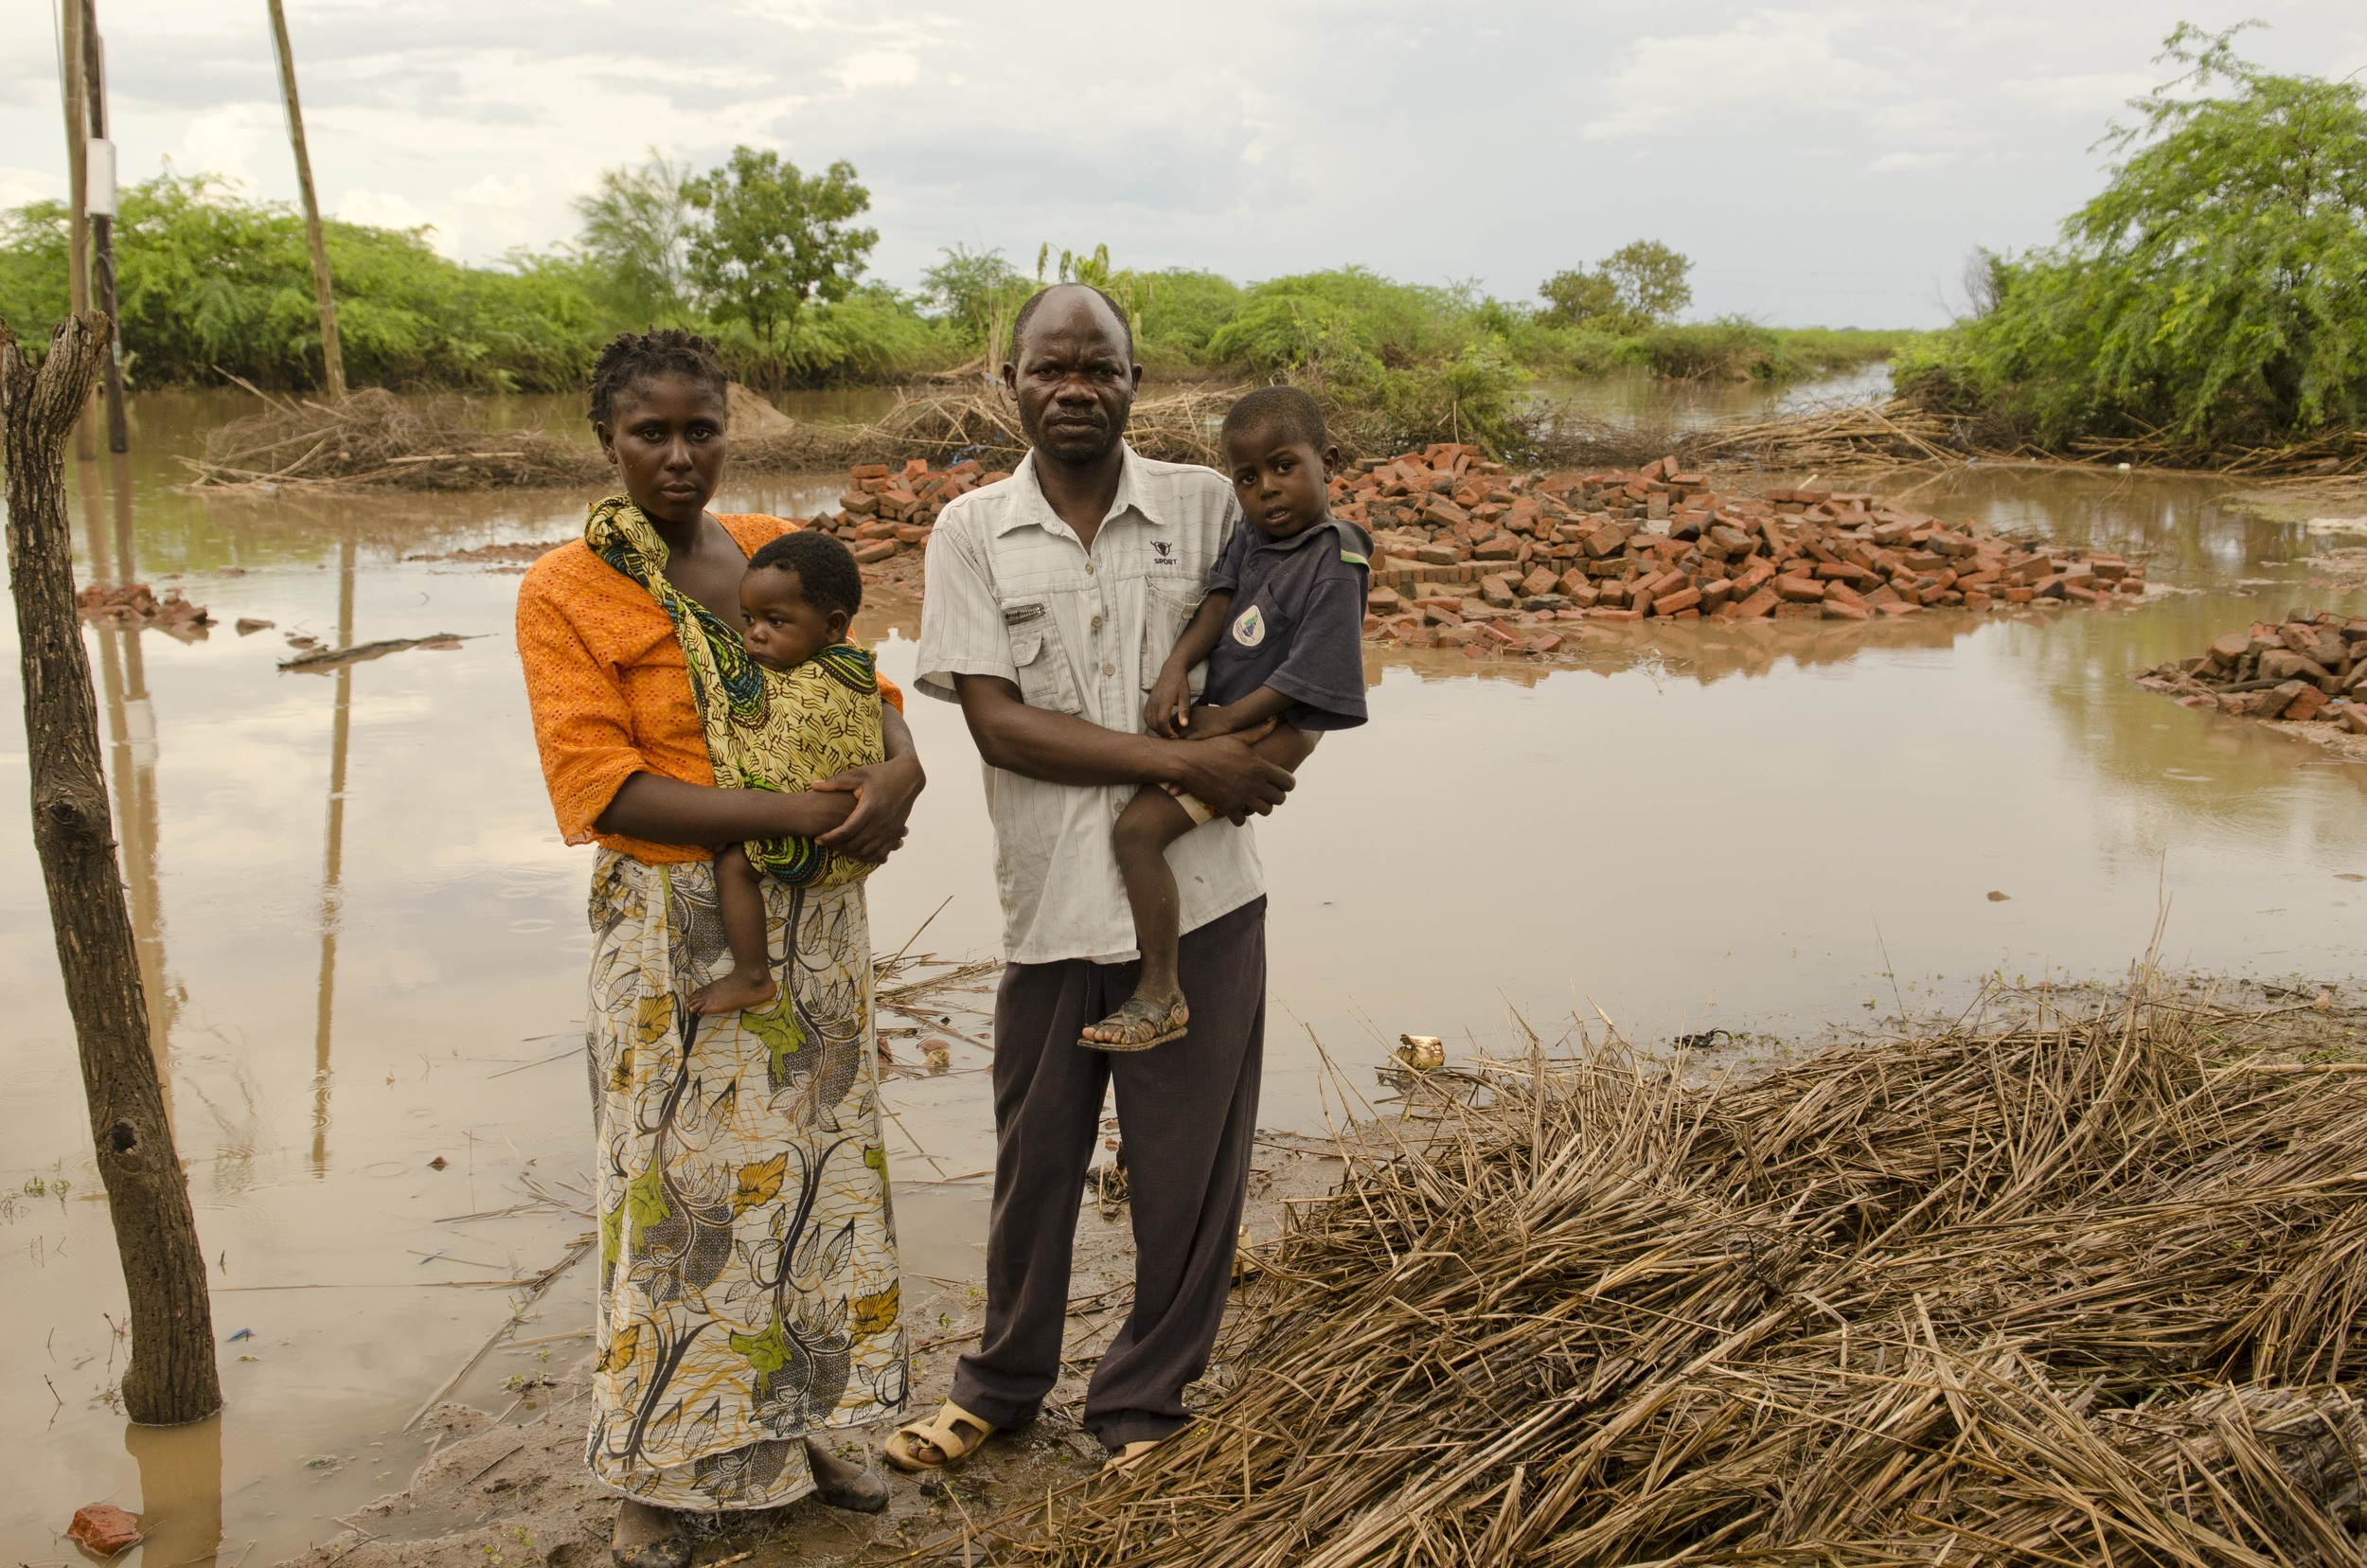 The Damiano family - Tamara, Caroline, Matthews and Precious - in front of what's left of their home in the southern Malawi district of Chikwawa.